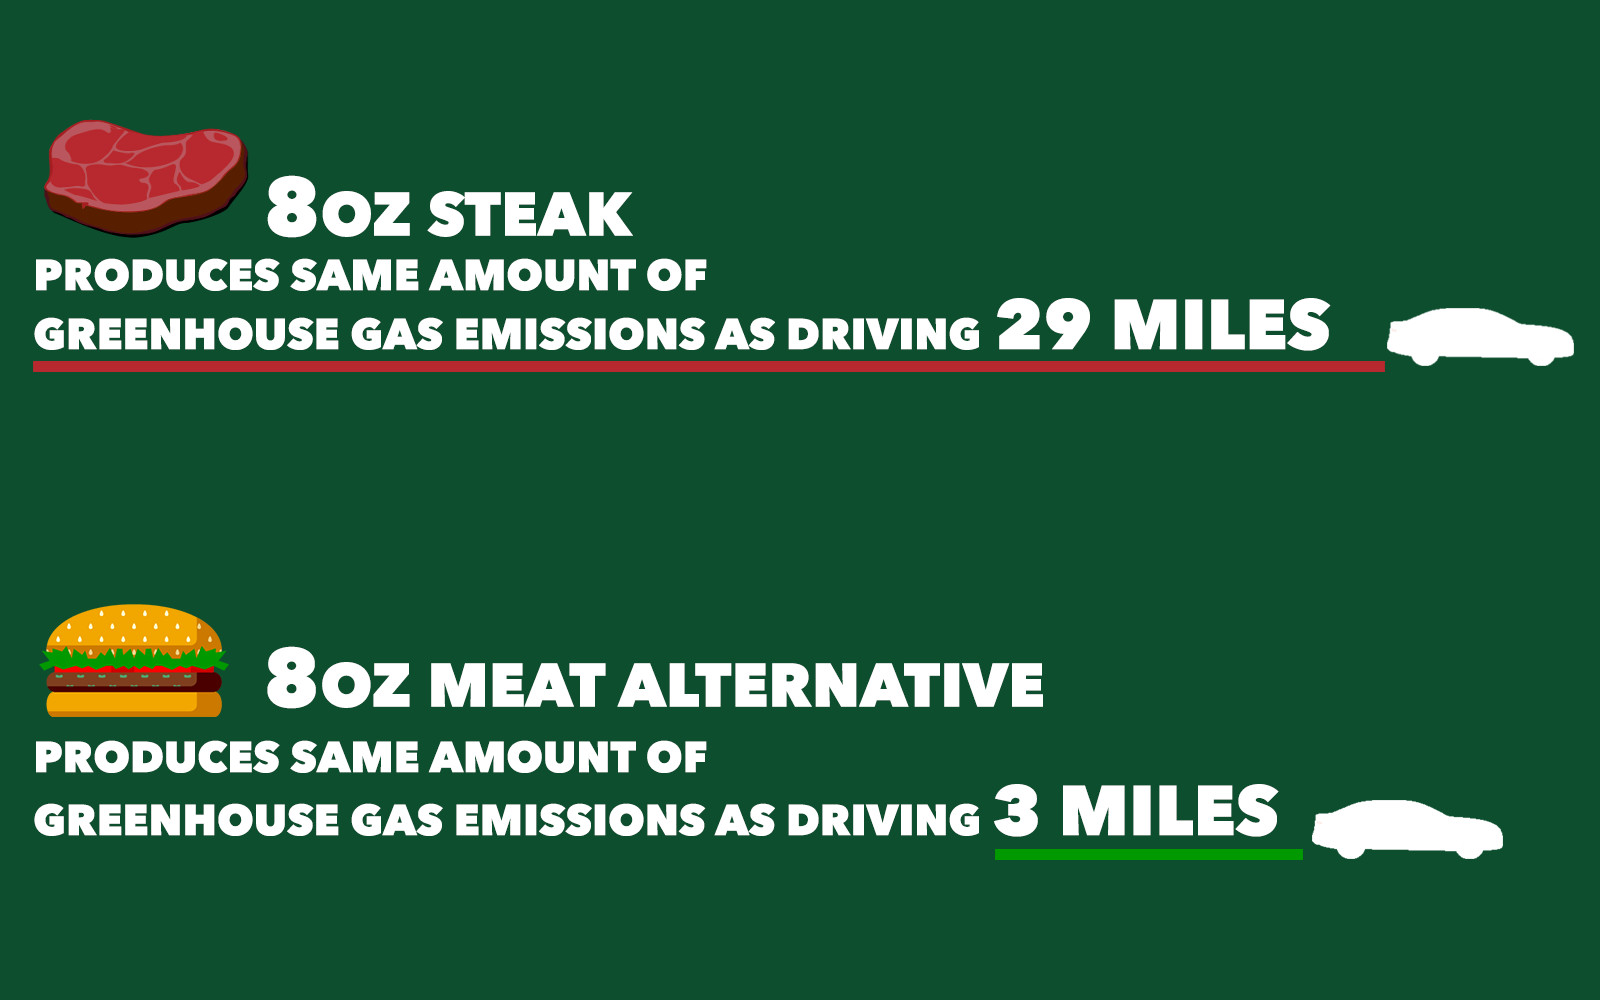 Proof Meat Alternatives Are Better: Producing Beef Creates 90 Percent More Greenhouse Gas Emissions